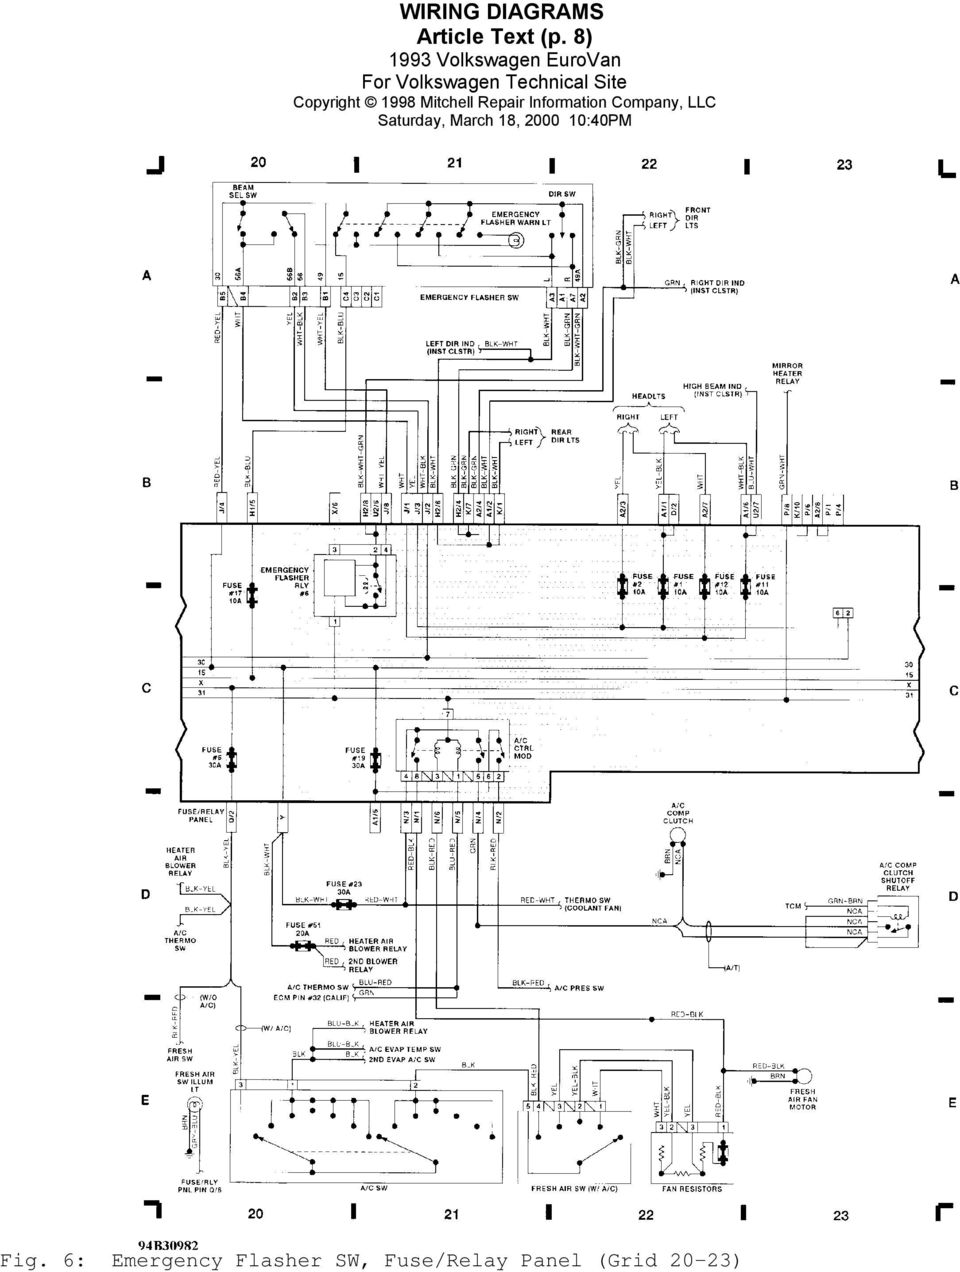 [WRG-9423] 2001 Eurovan Alternator Wiring Diagram